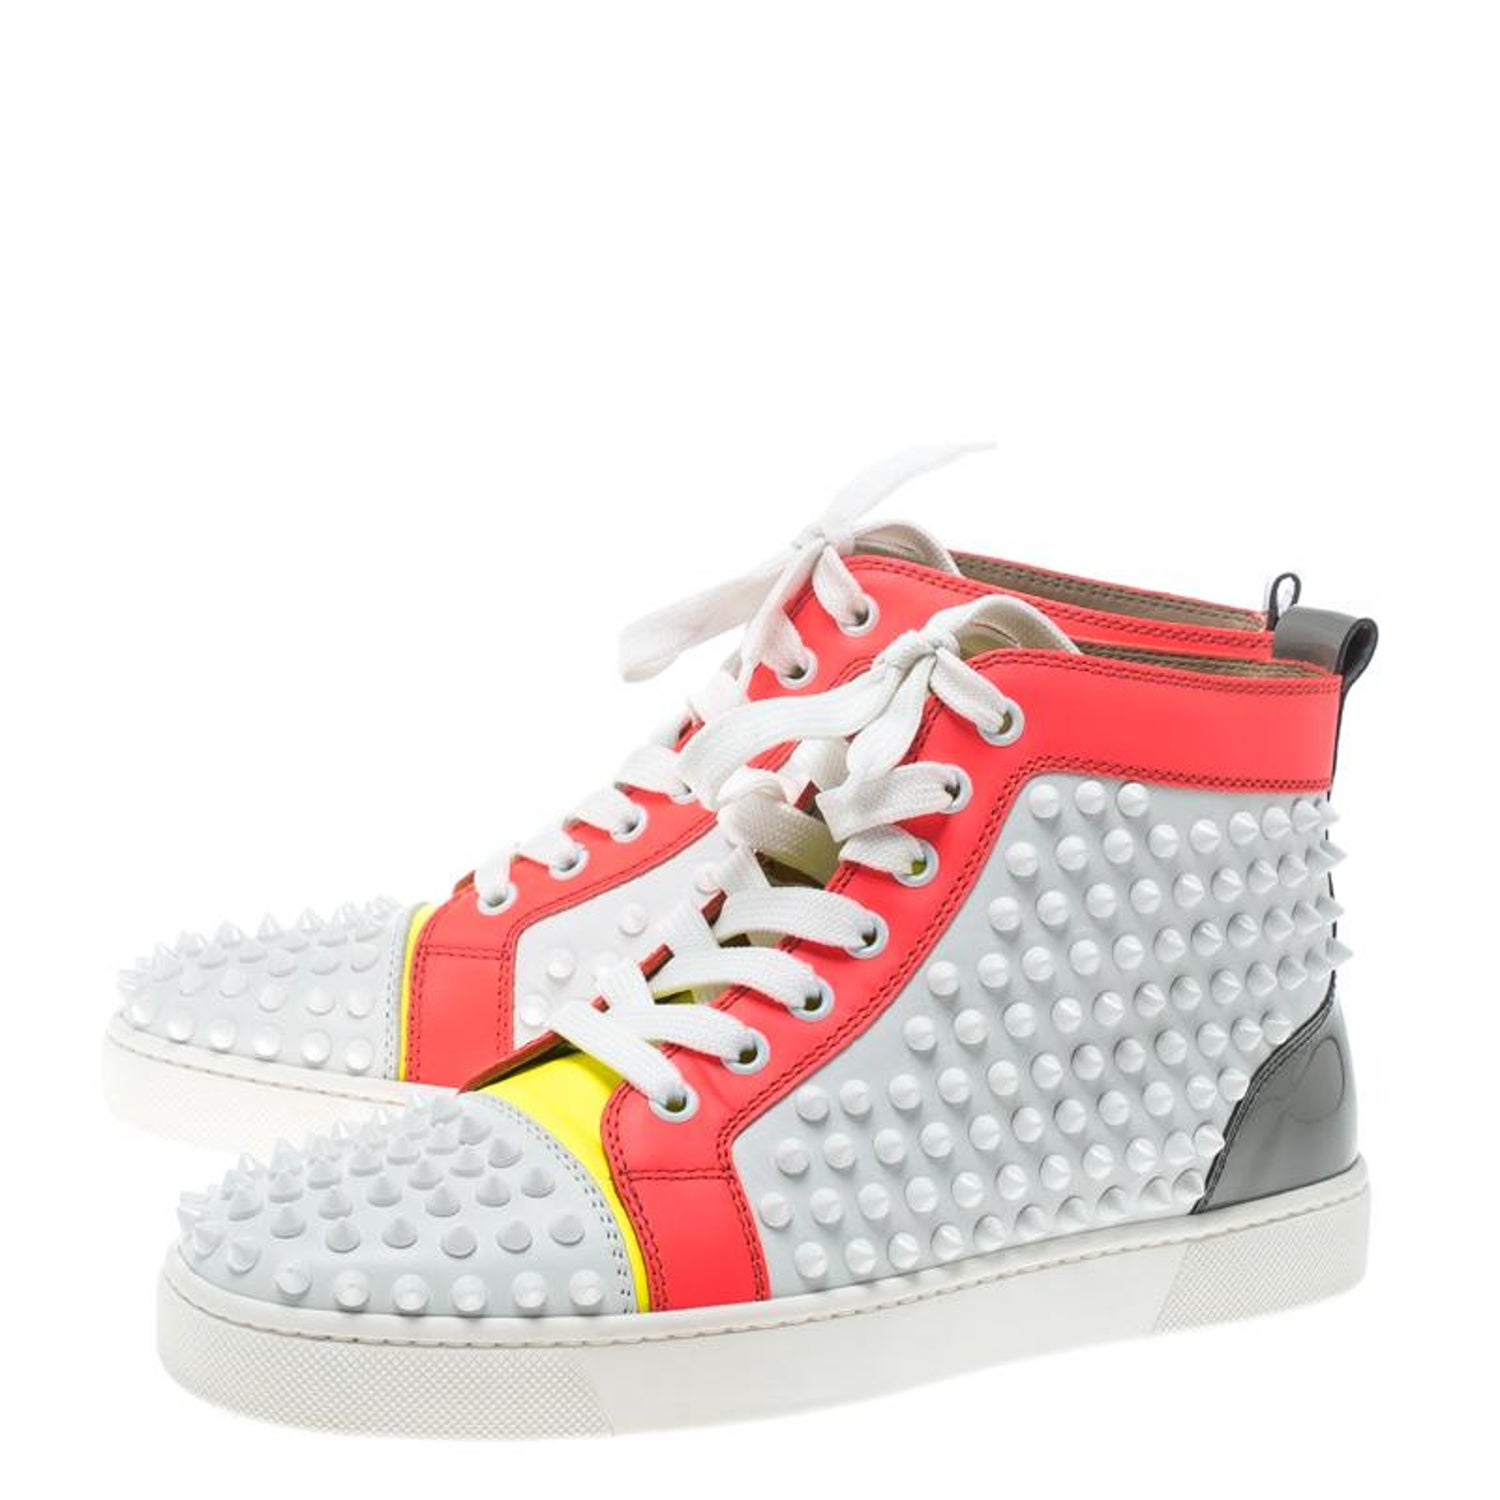 2c239e4b174 Christian Louboutin Multicolor Leather Louis Spikes Lace Up High Top  Sneakers Si For Sale at 1stdibs